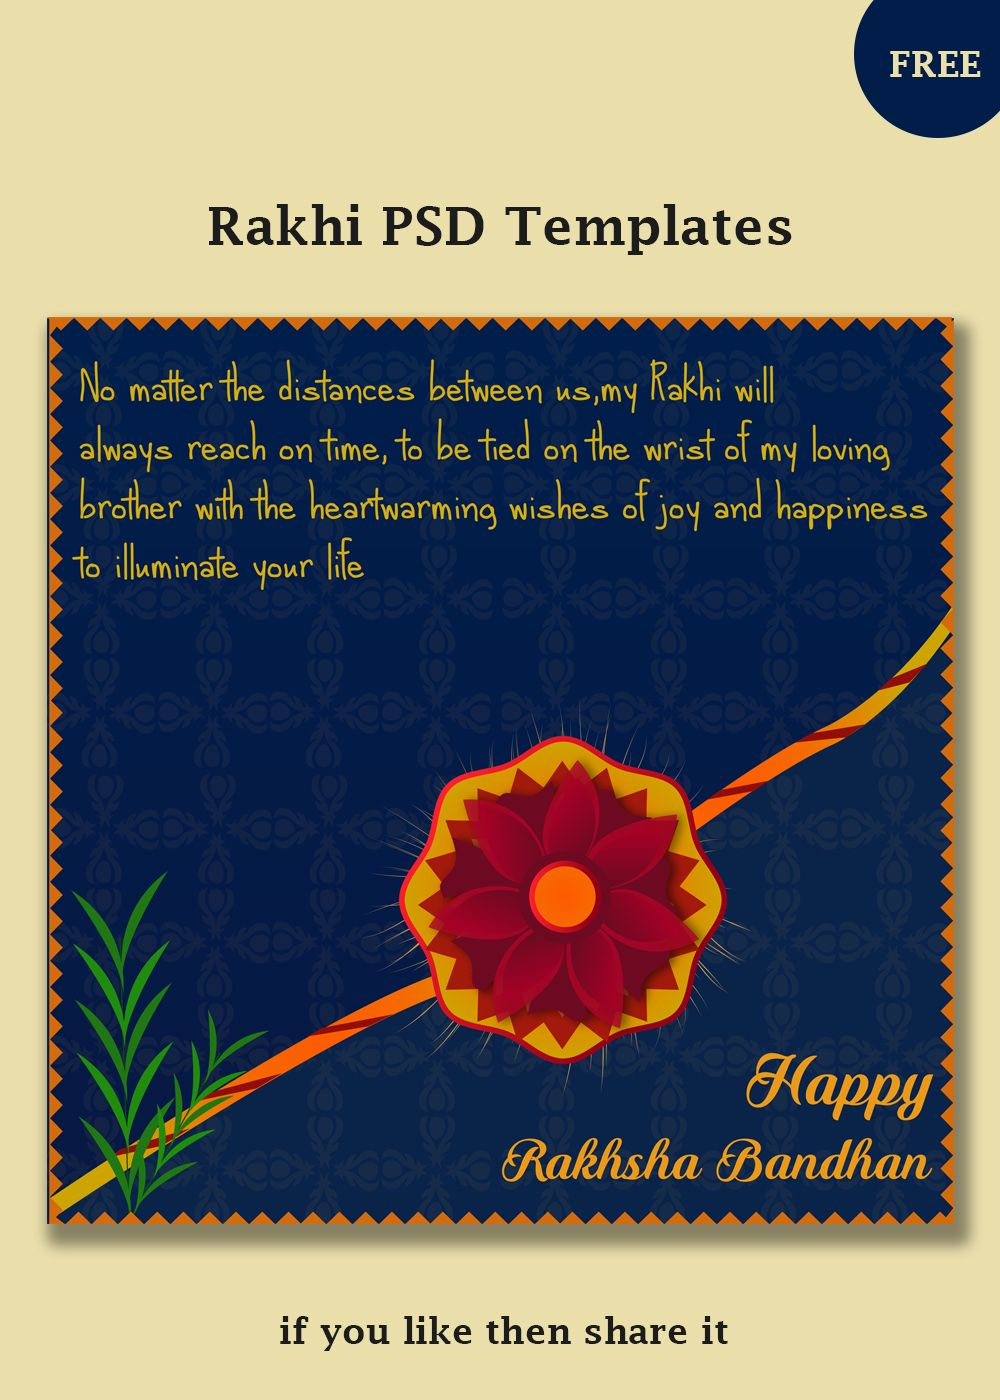 Free Rakhi Vector Templates | Social Post Design | Templates, Rakhi - Free Online Printable Rakhi Cards